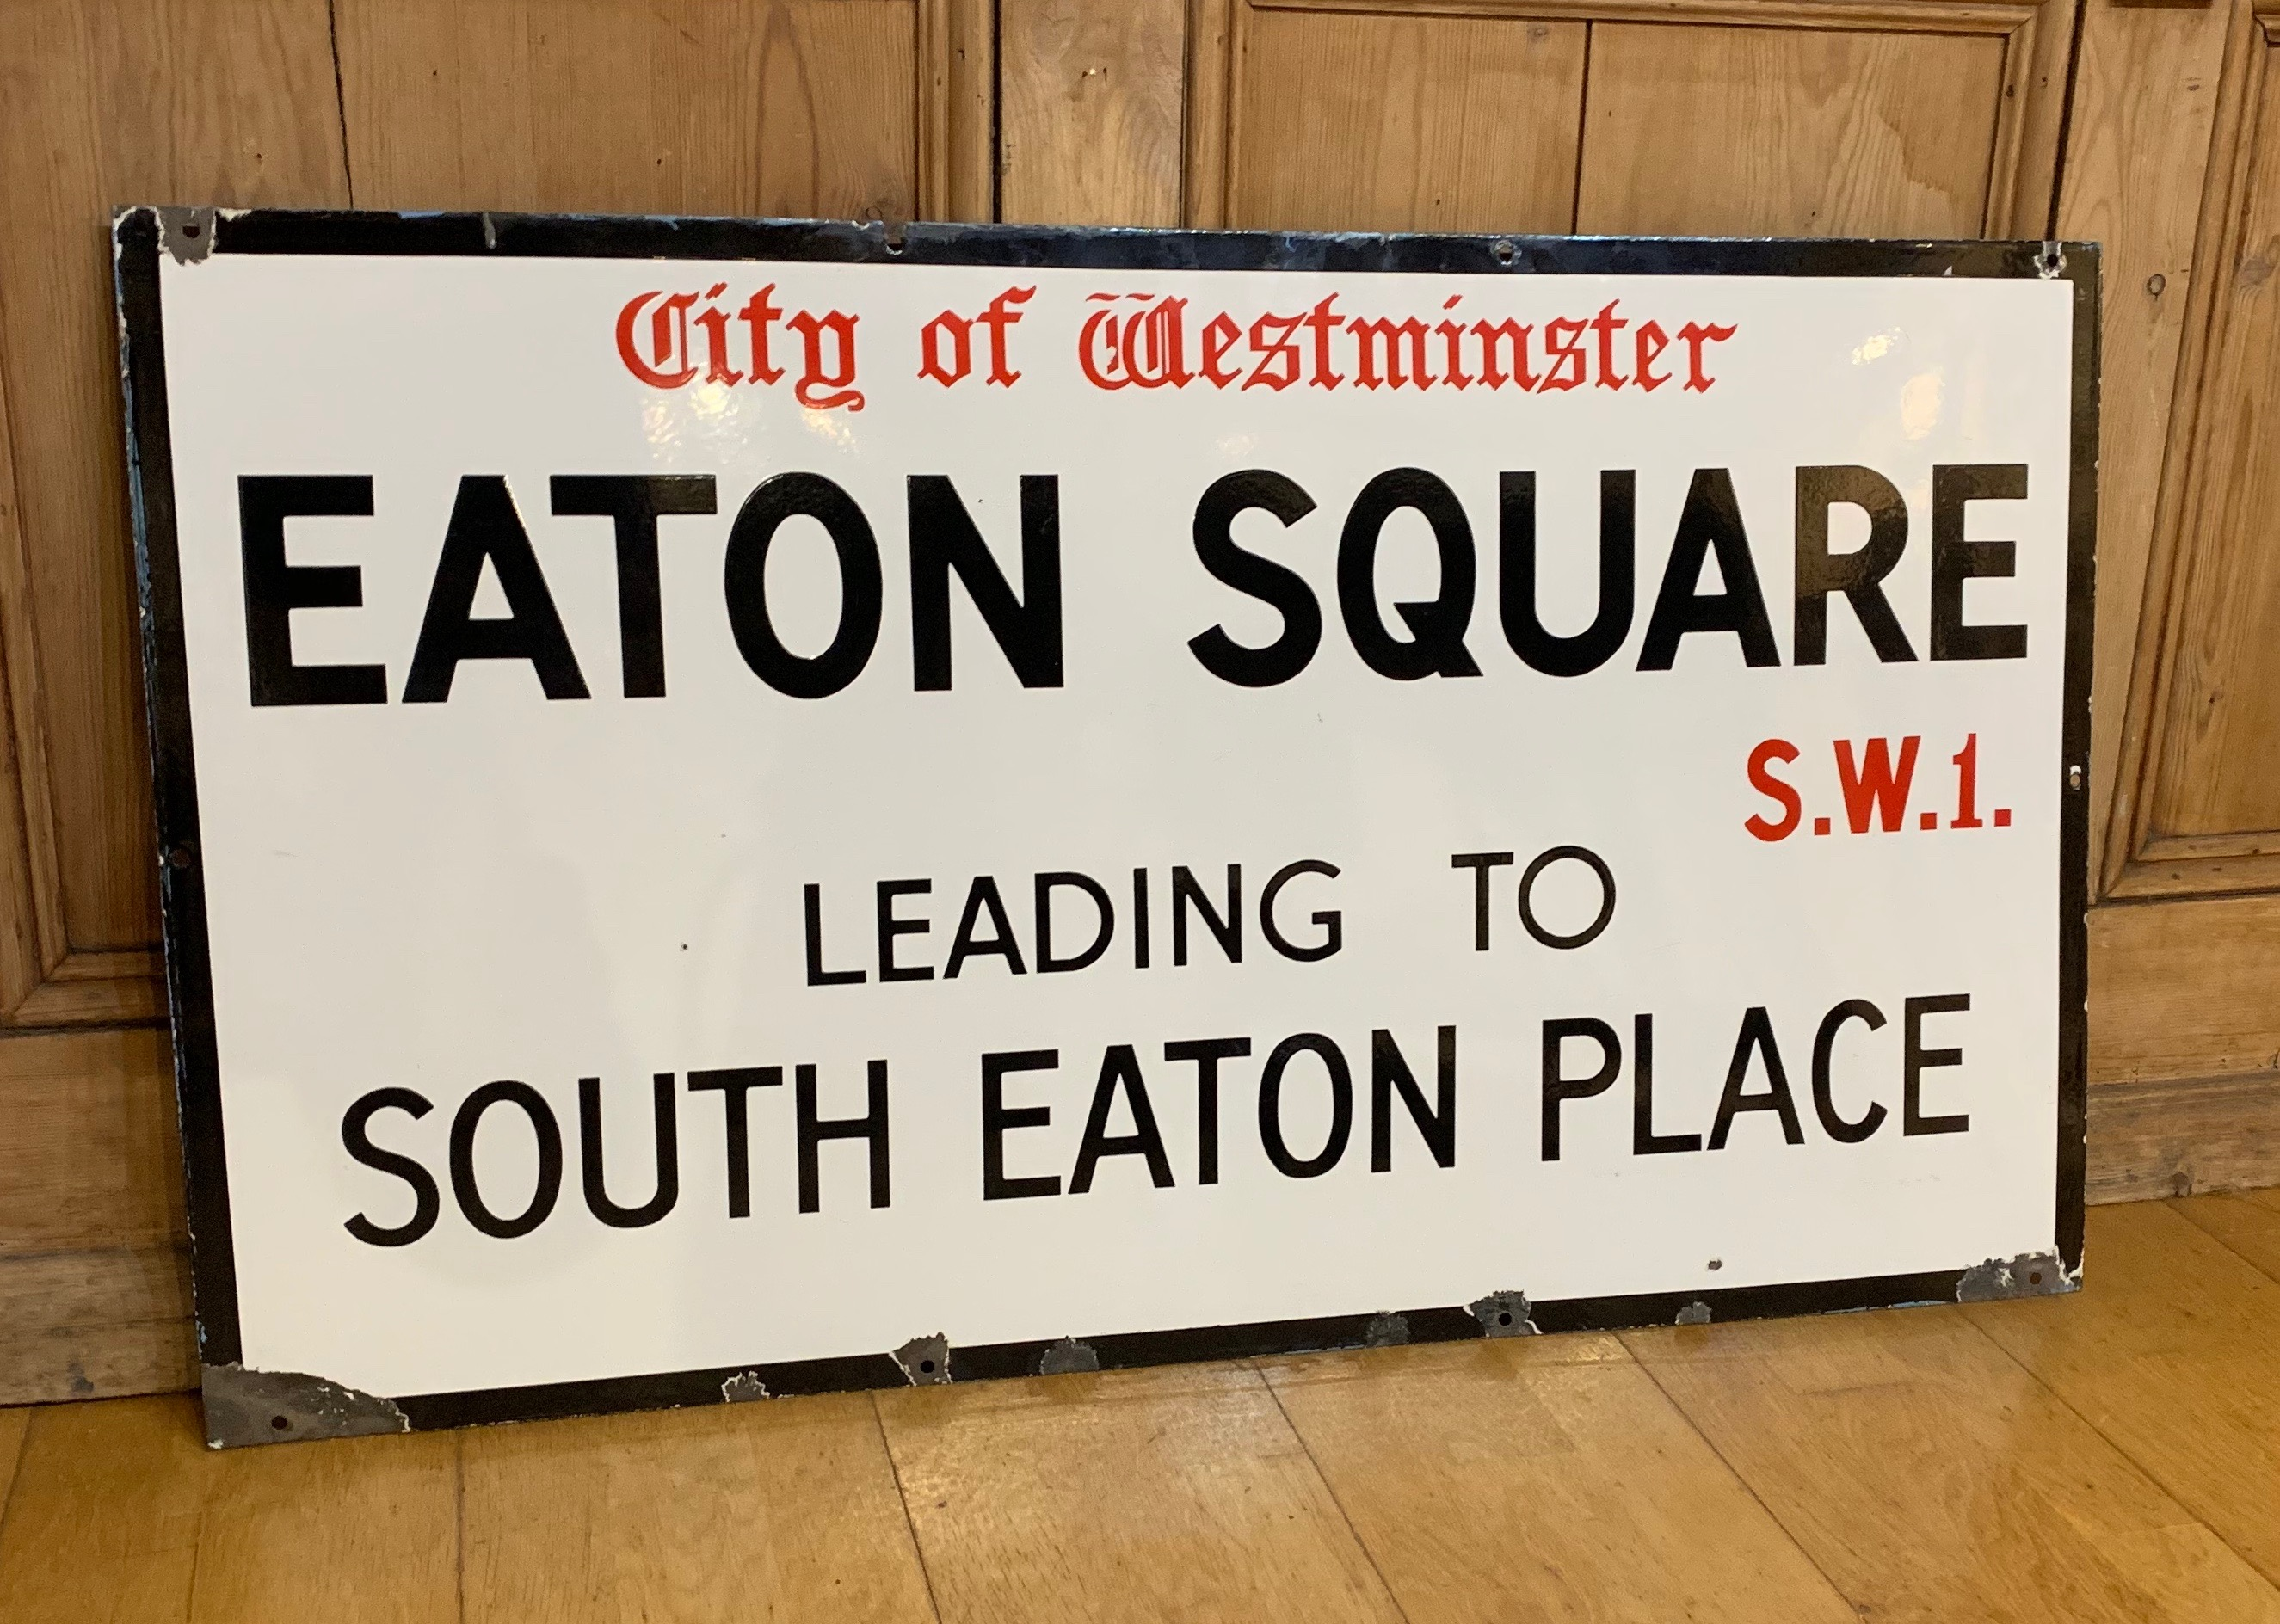 Eaton Square, South Eaton Place, Westminster SW1.